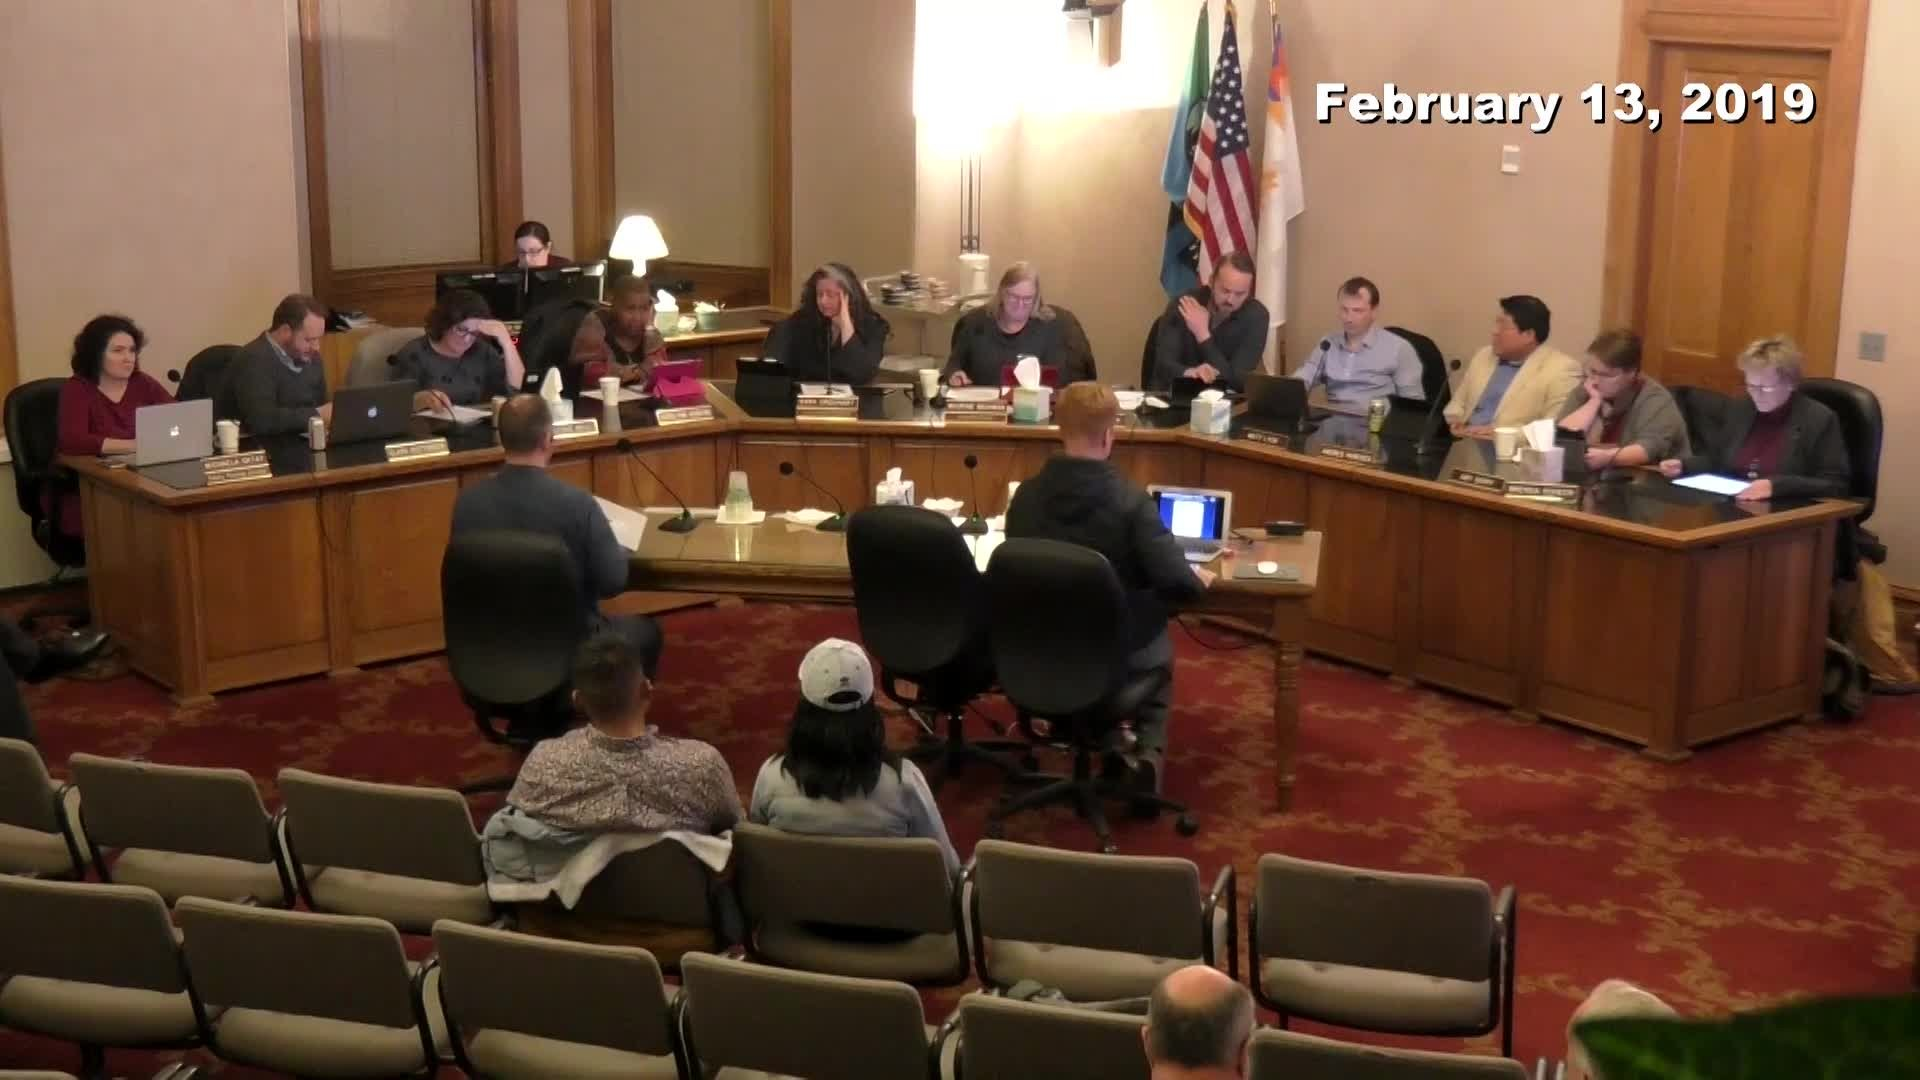 Planning Commission Meeting - 02/13/2019